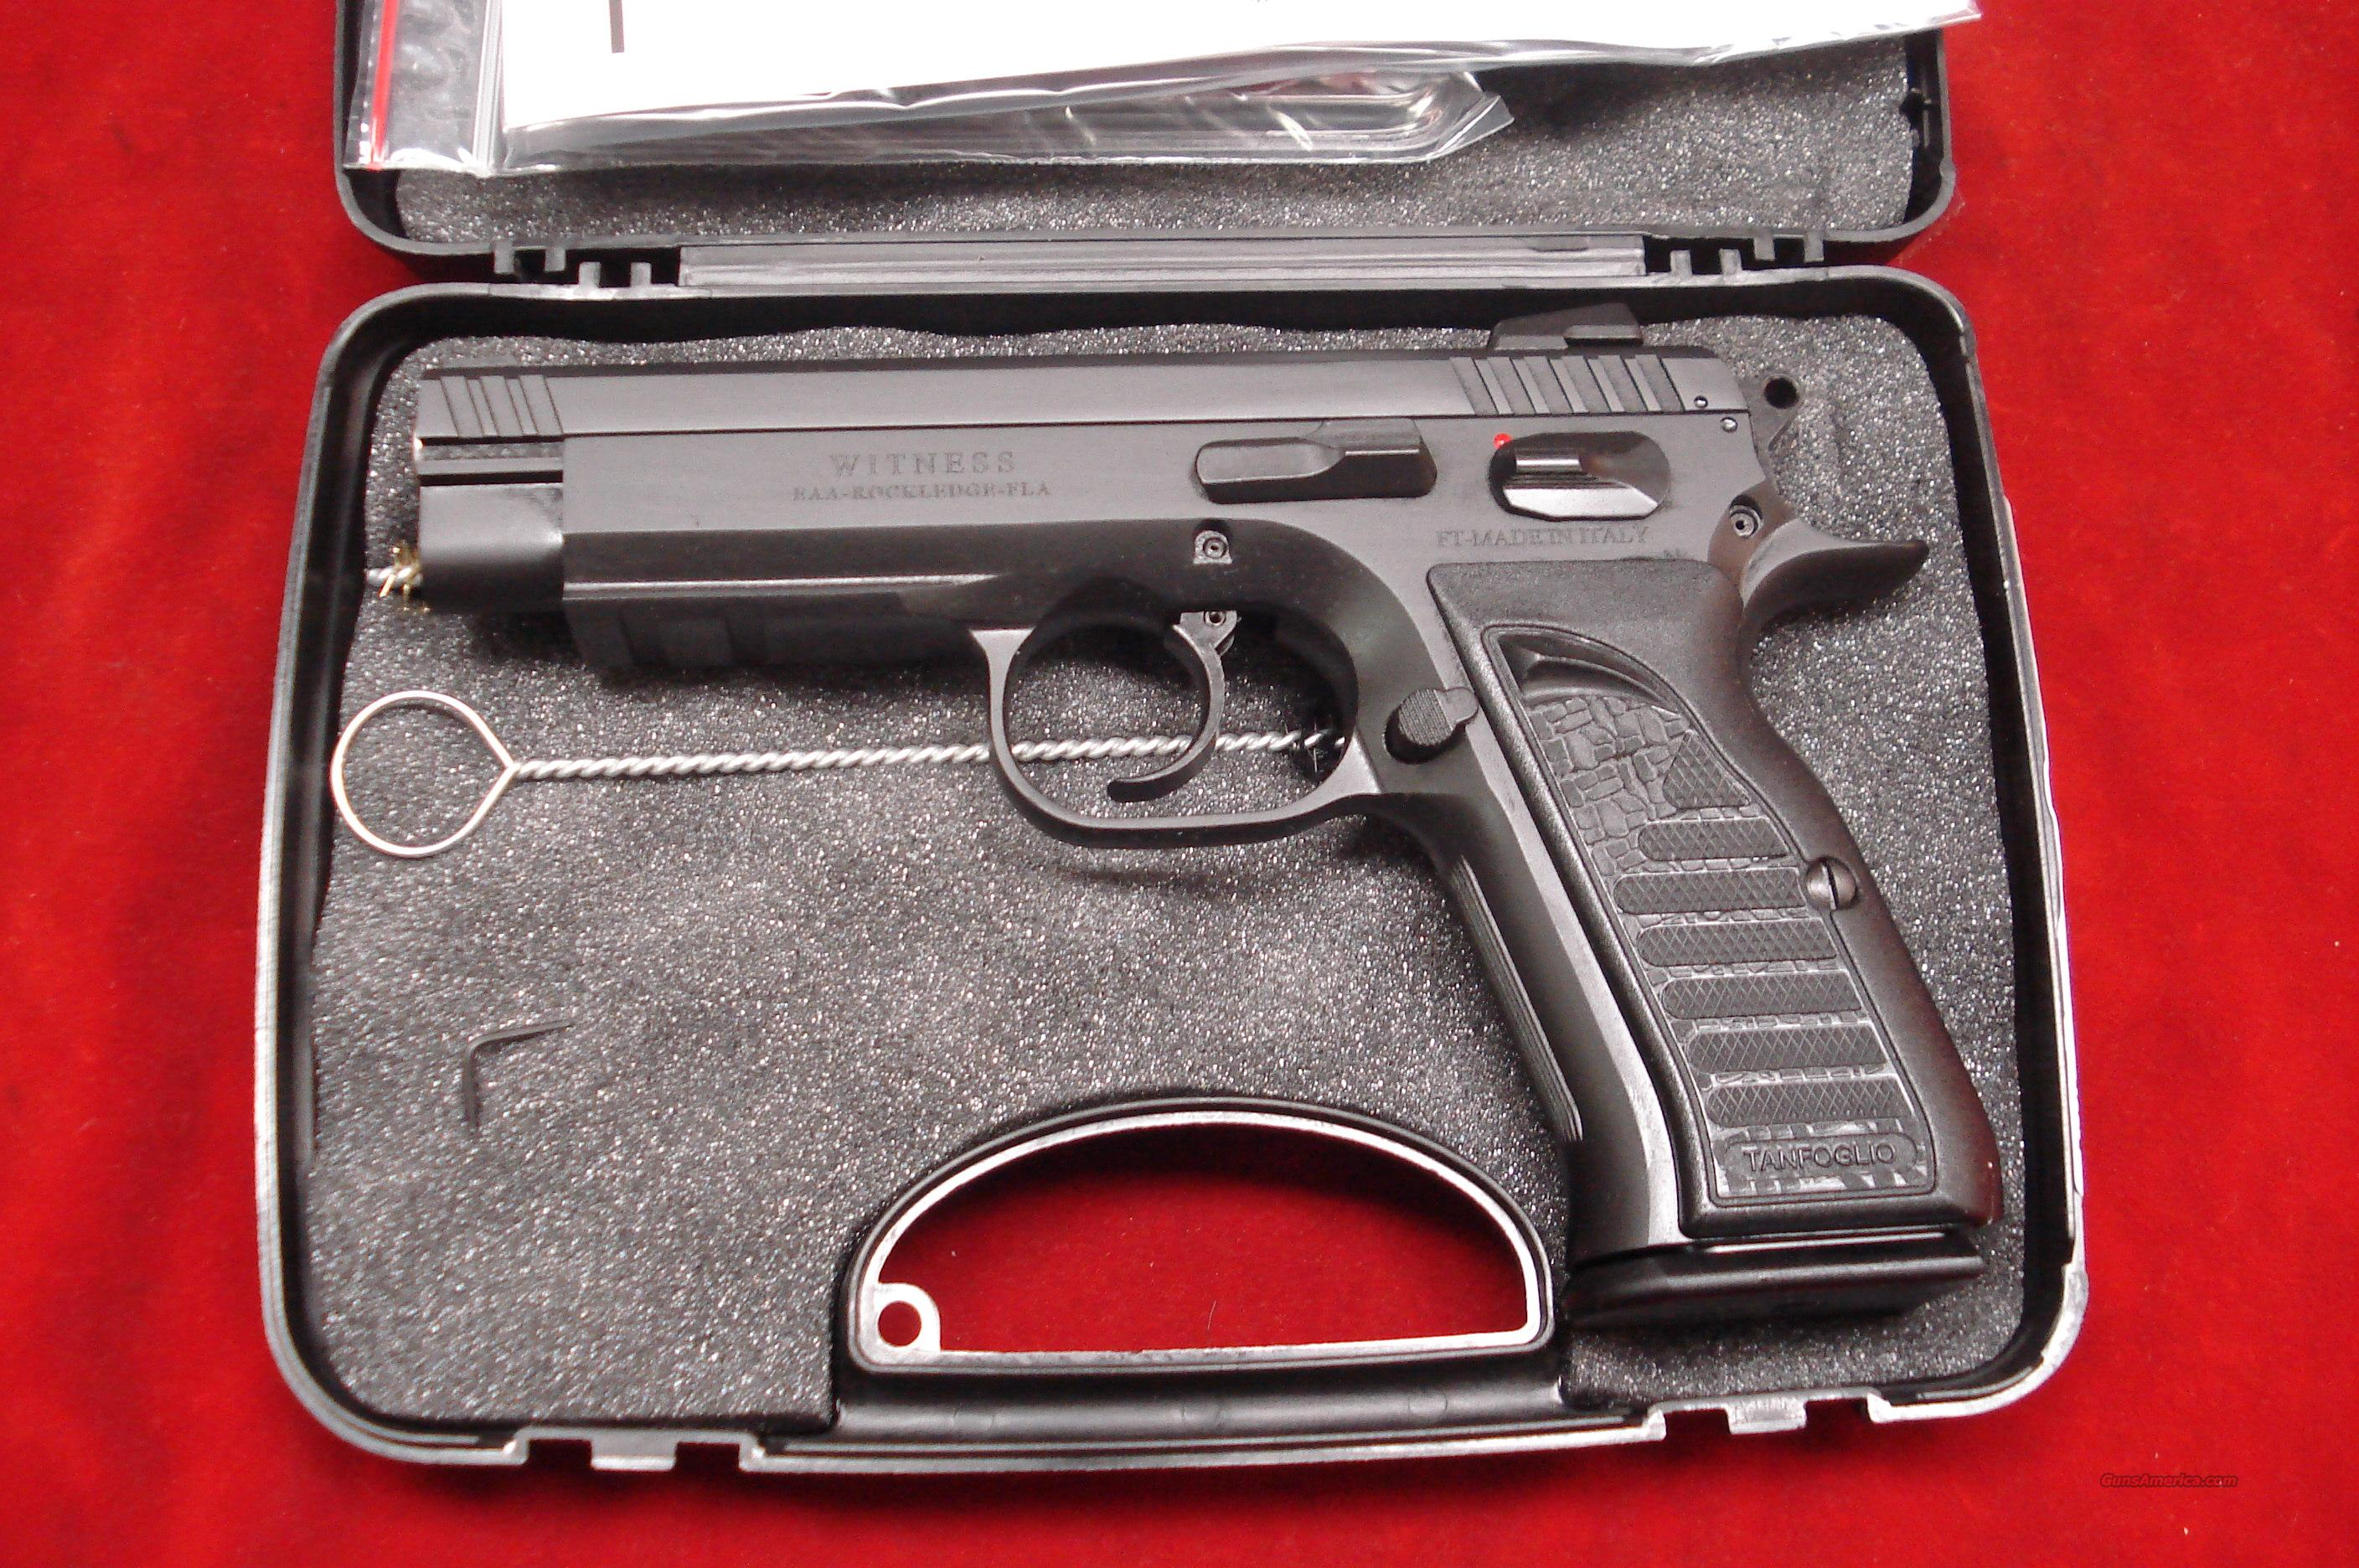 EAA TANFOGLIO WITNESS 10MM CAL. BLUE NEW  Guns > Pistols > EAA Pistols > Other